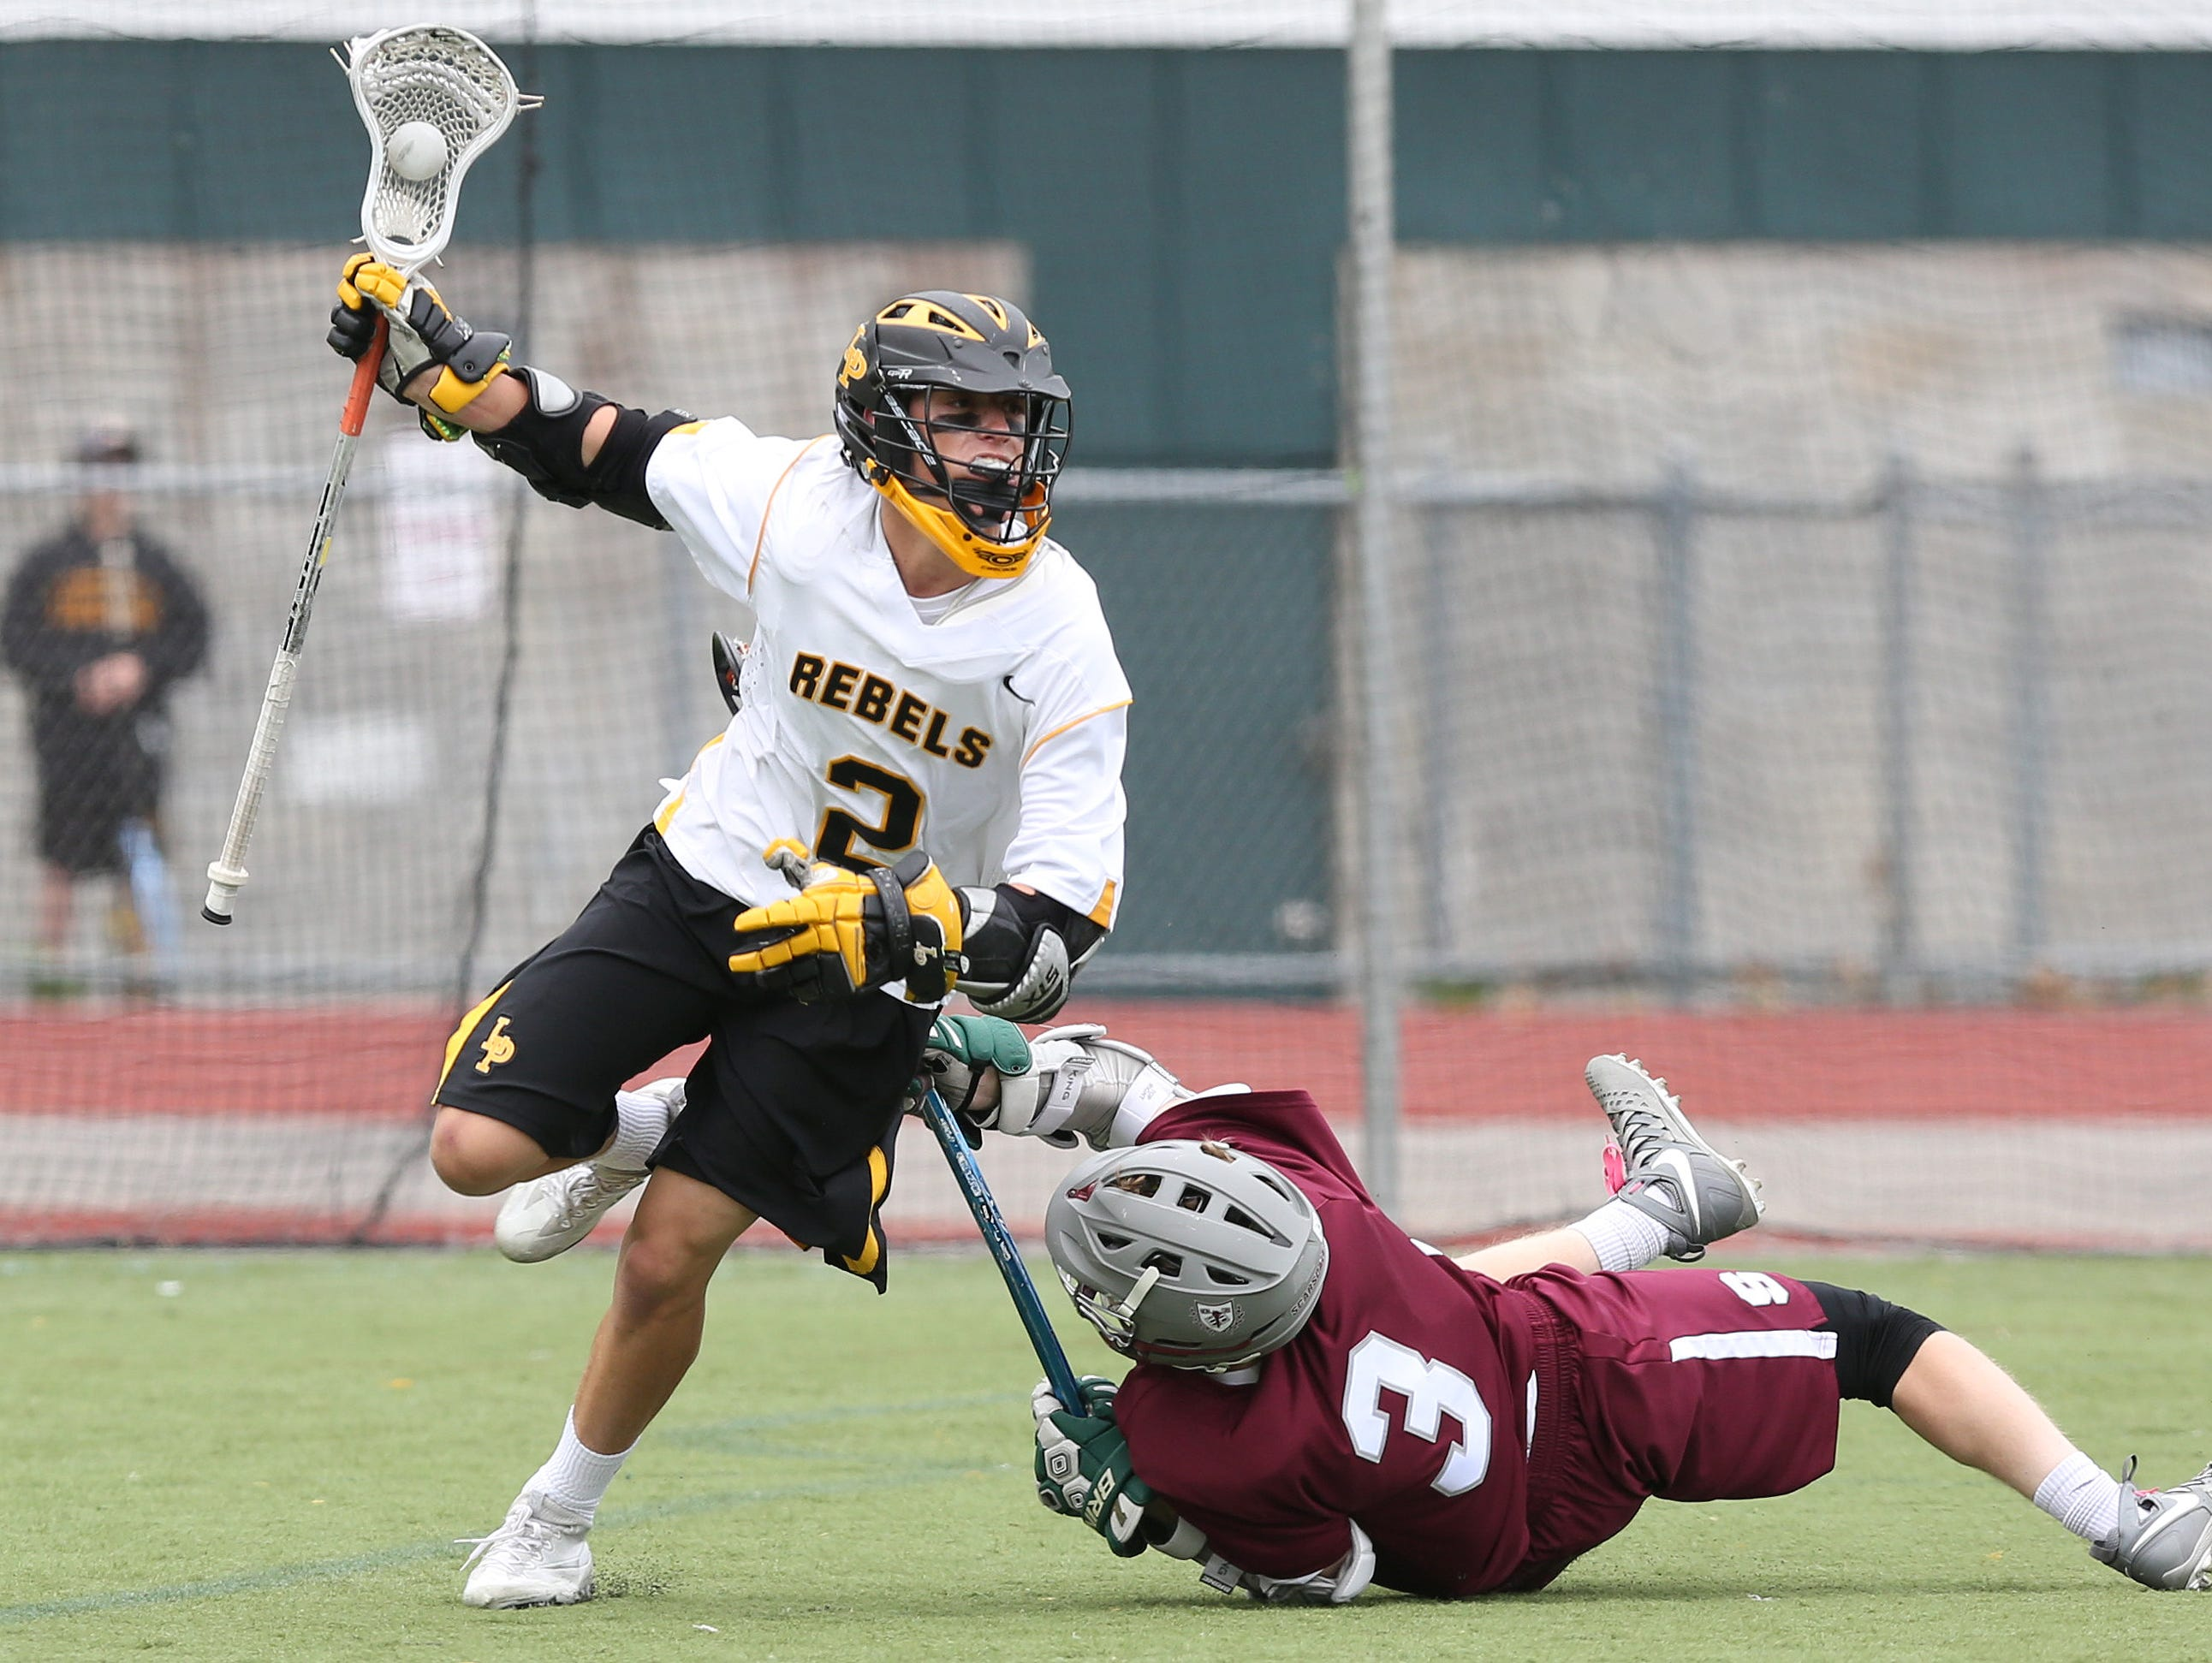 From left, Lakeland/Panas' Sean Makar (2) moves around Scarsdale's Sam Seltzer (3) during second half action in a Section 1 boys lacrosse playoff game at Lakeland High School in Shrub Oak May 21, 2016. Lakeland/Panas won the game 11-7.